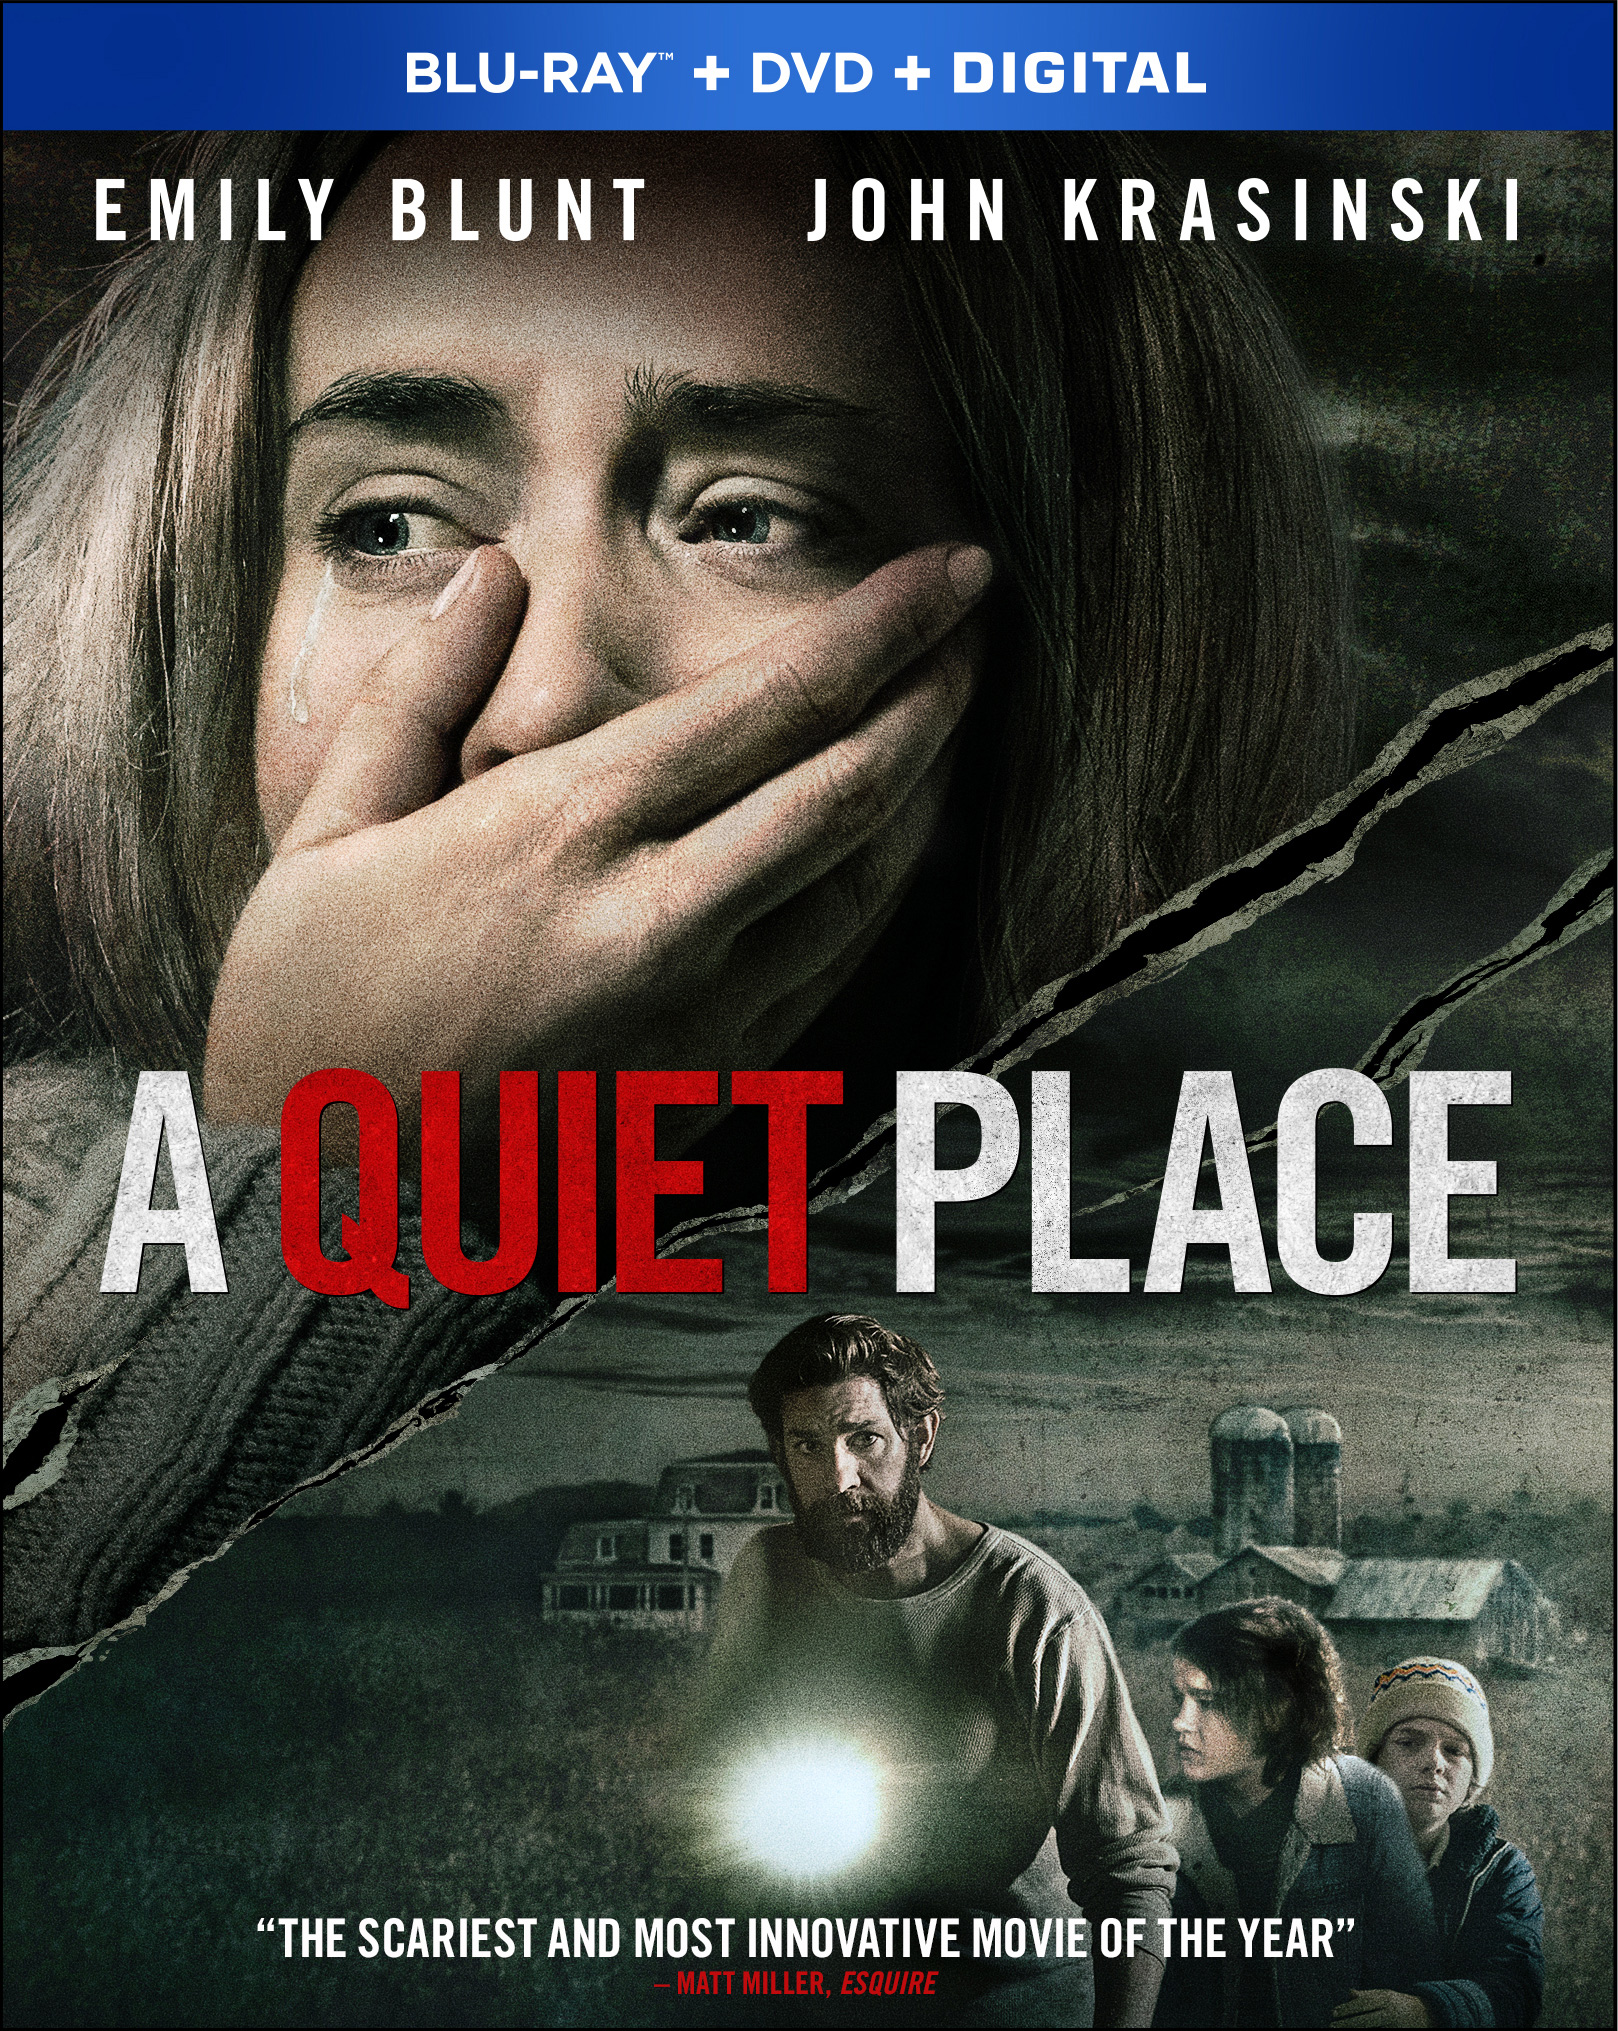 A Quiet Place (Blu-ray + DVD + Digital) by